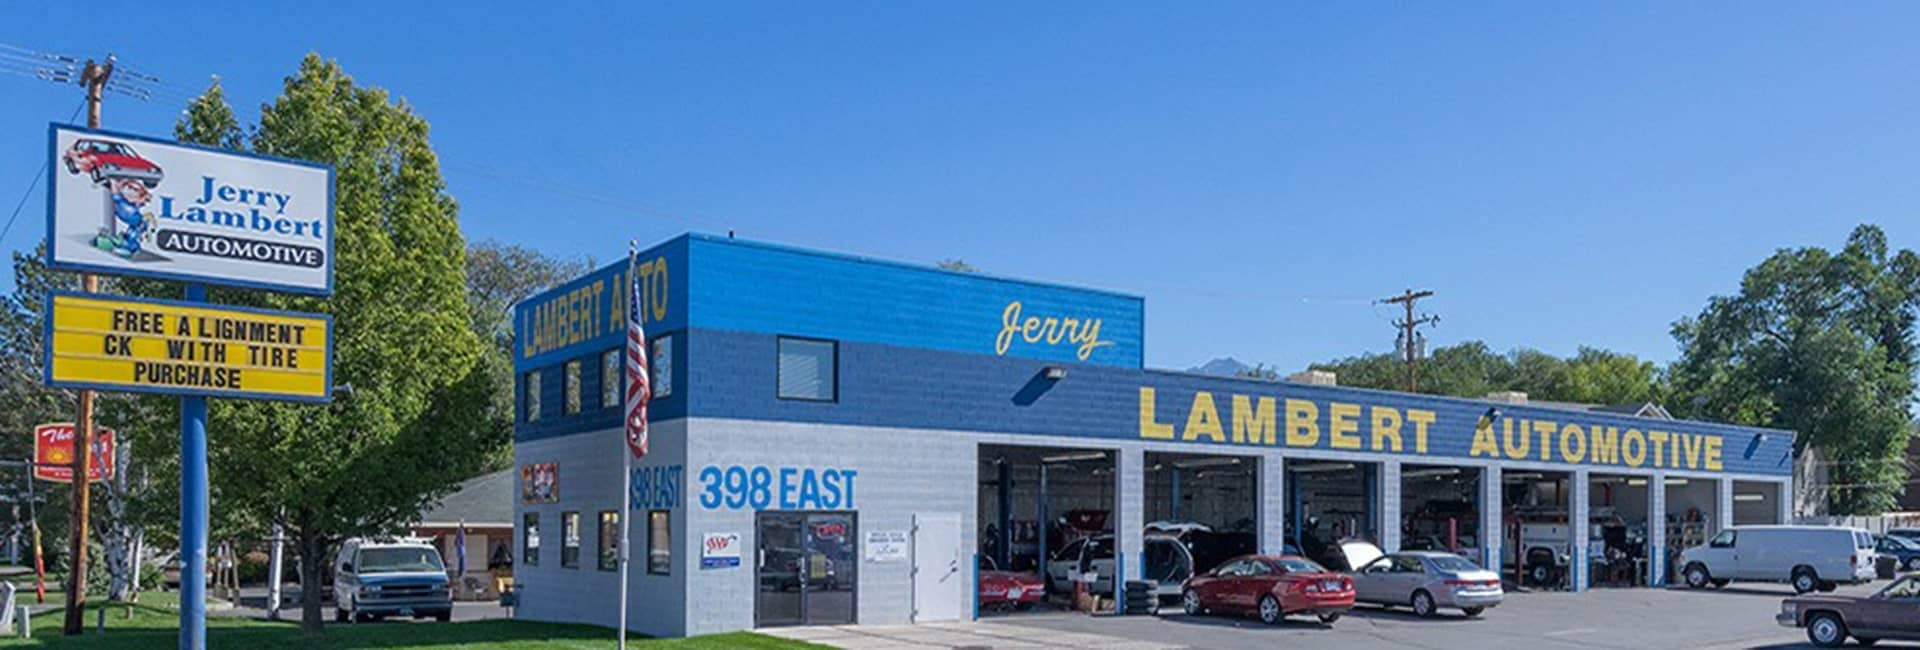 Salt Lake City Auto Repair